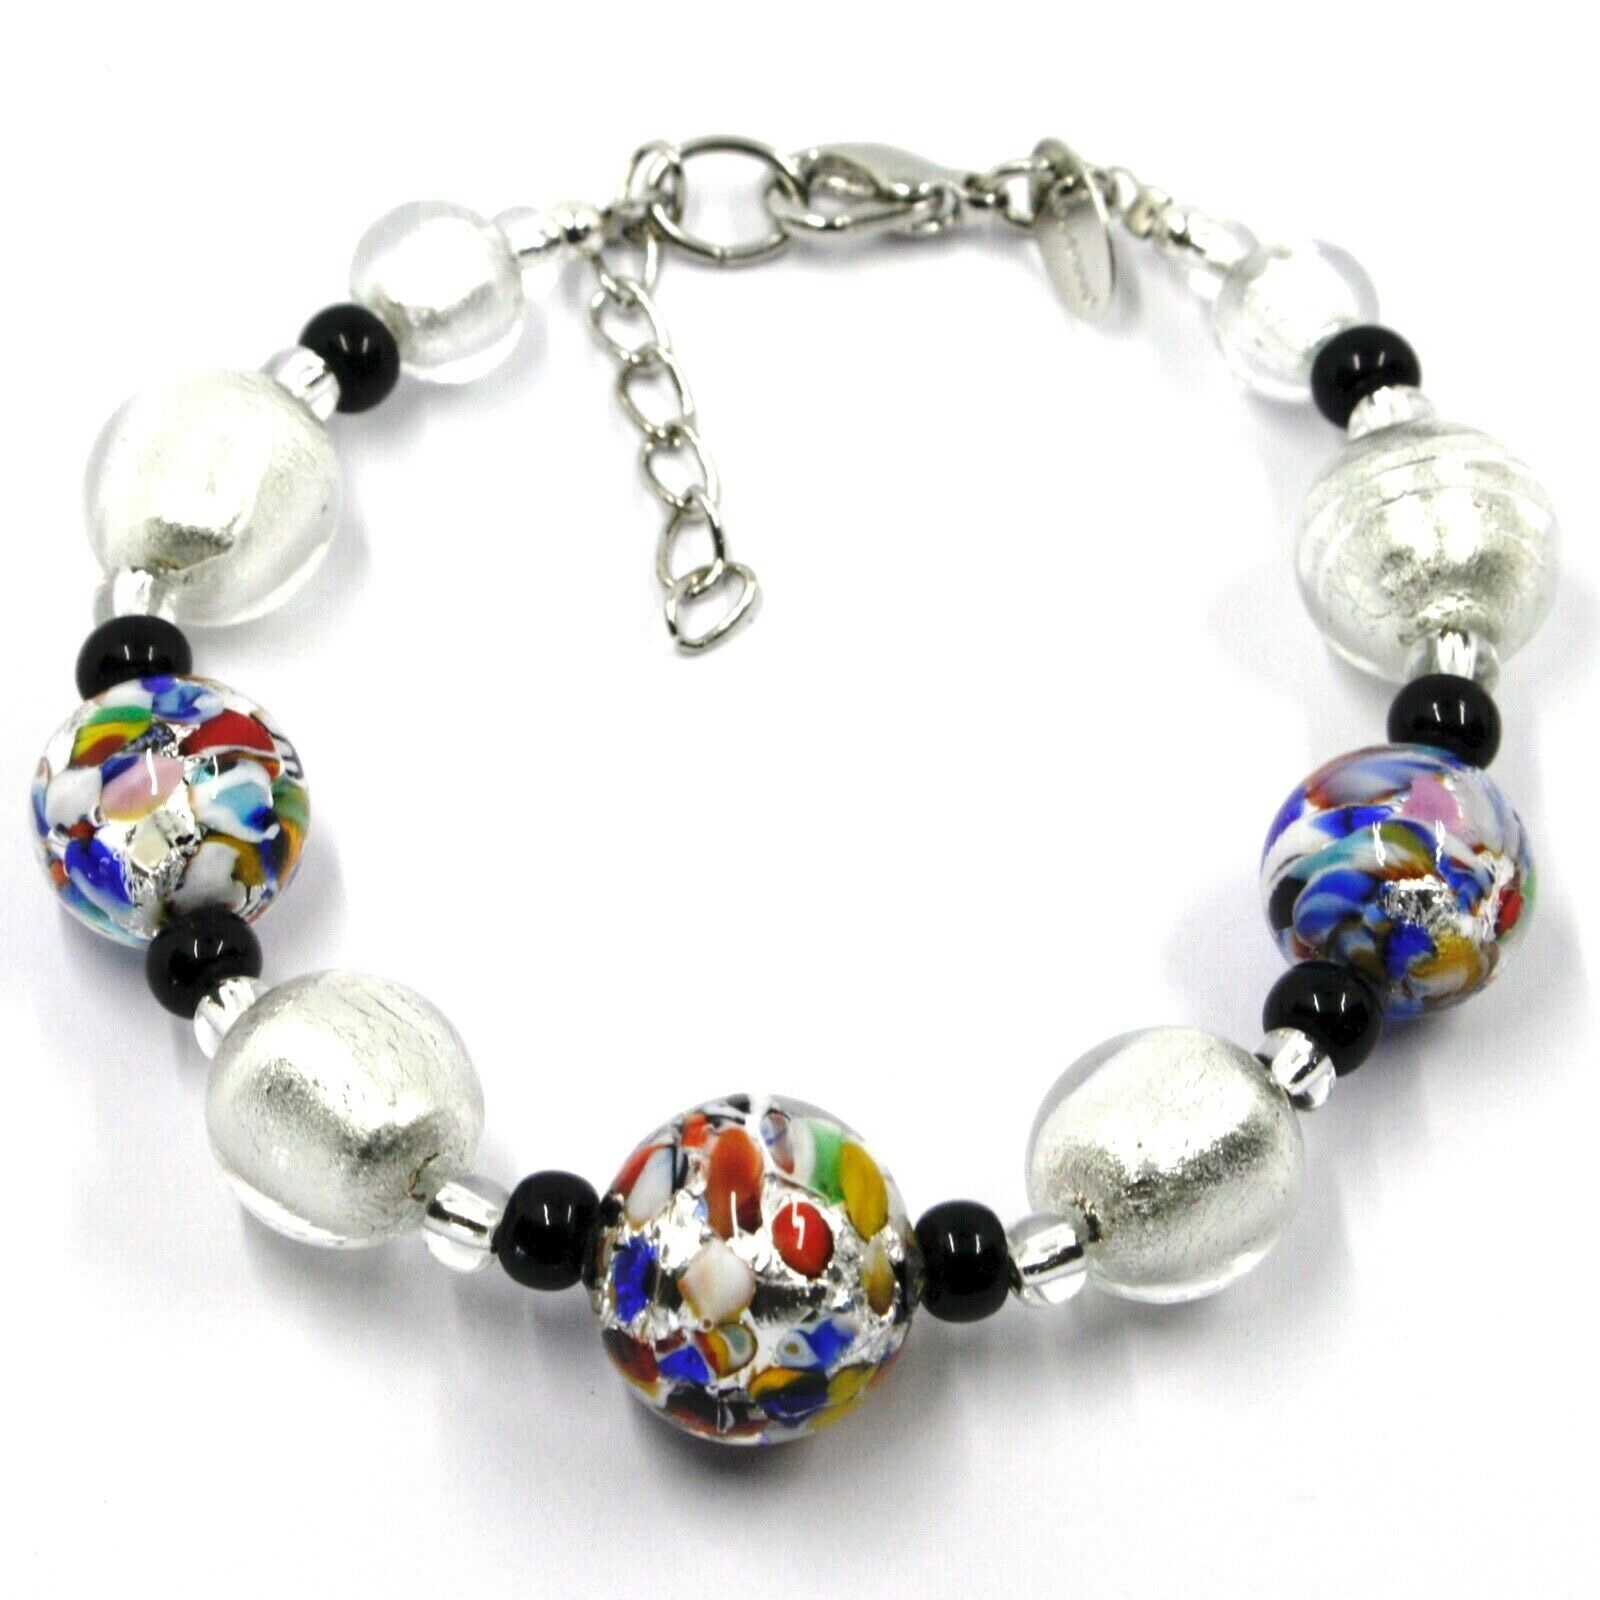 BRACELET MACULATE MULTI COLOR MURANO GLASS SPHERE, SILVER LEAF, MADE IN ITALY